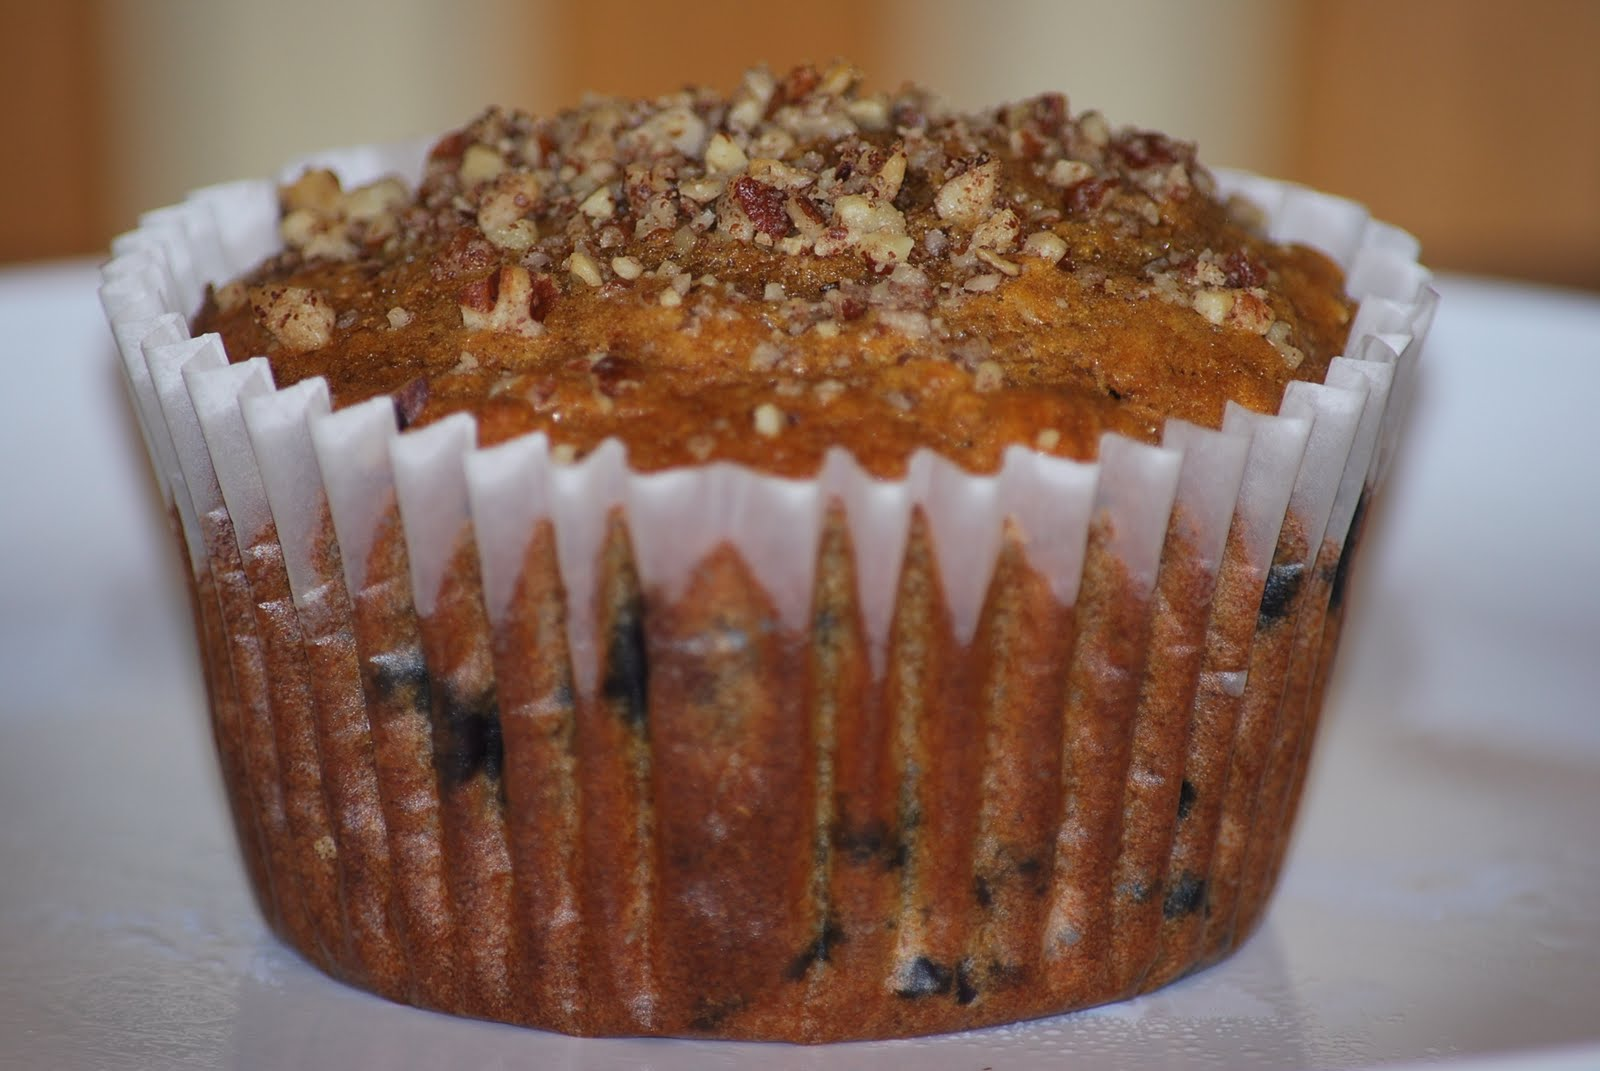 Meals for Busy Families: Guilt Free Muffins